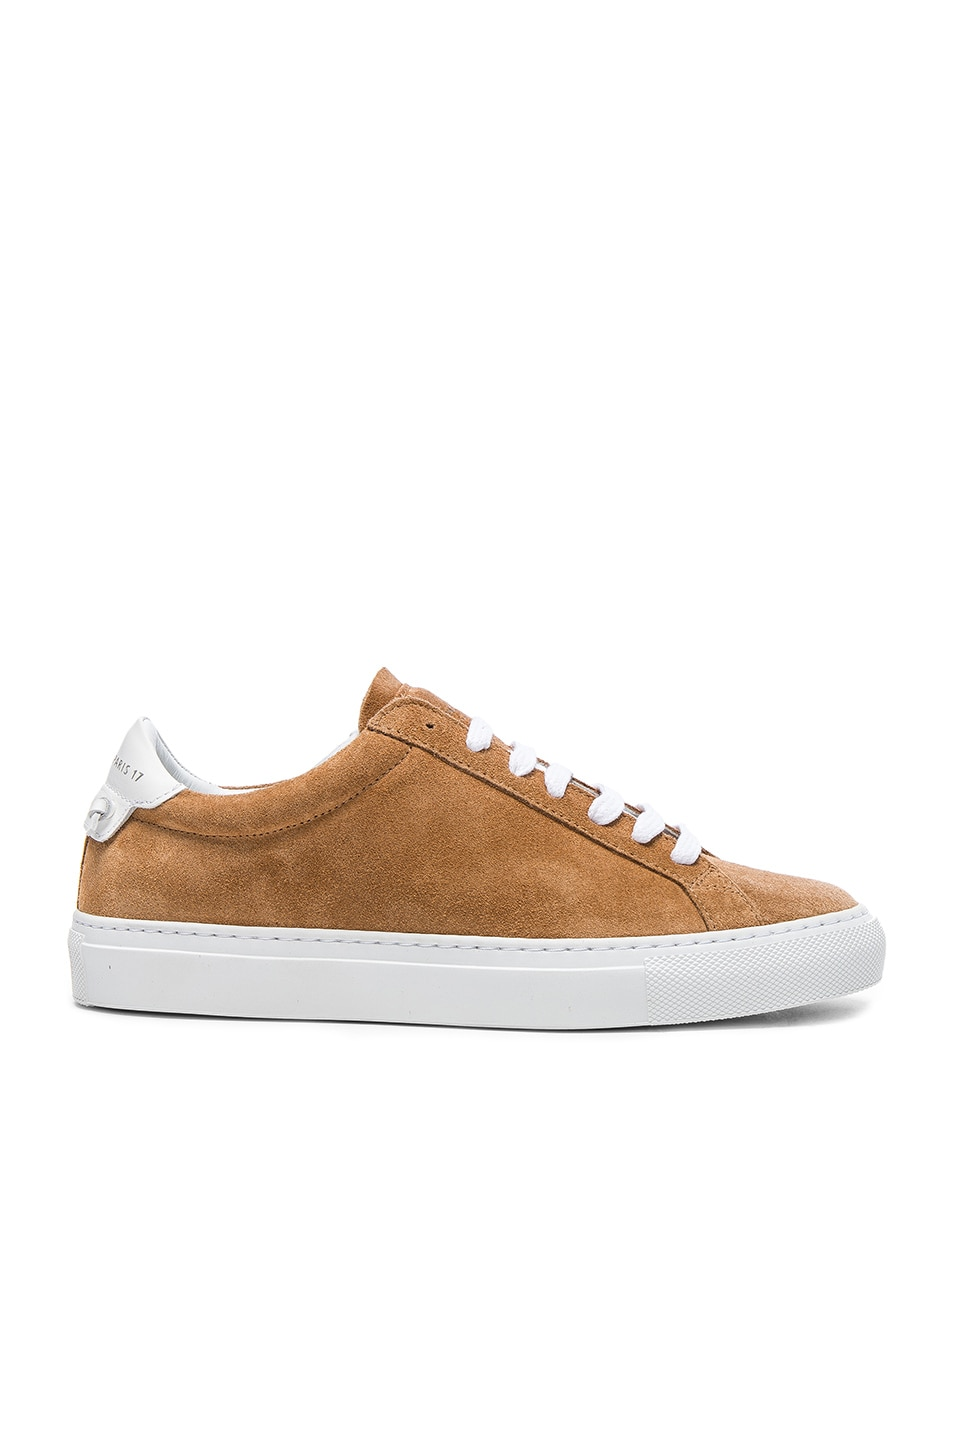 Image 1 of Givenchy Suede Knots Low Sneakers in Tan